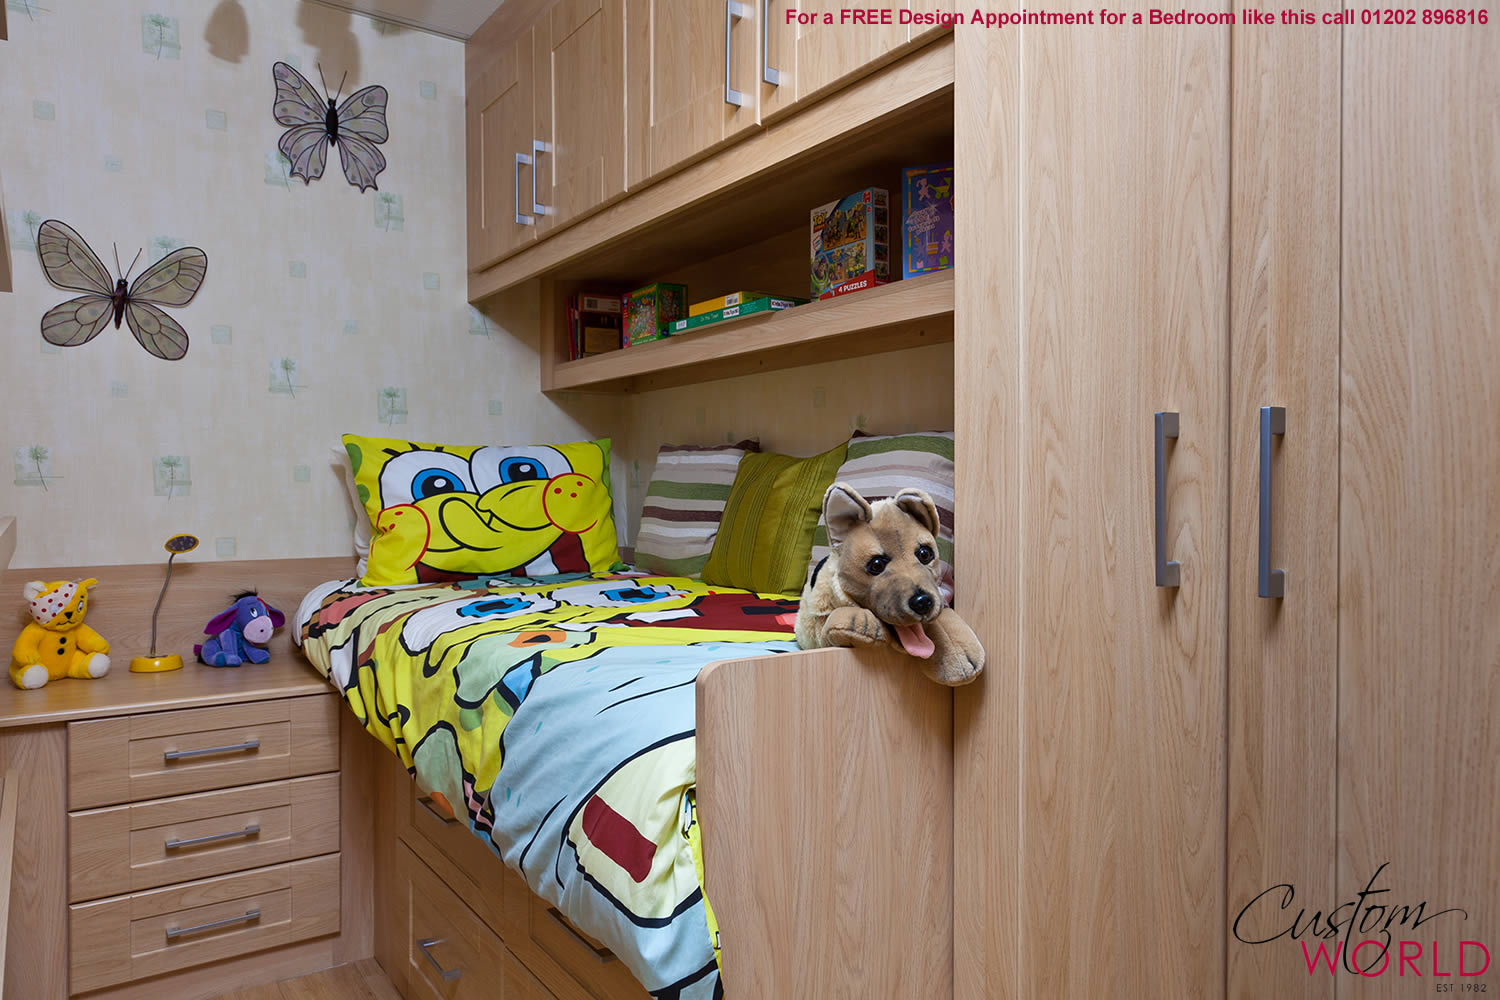 Children's room storage solutions. Box Room or Childrens Bedroom Cabin Bed